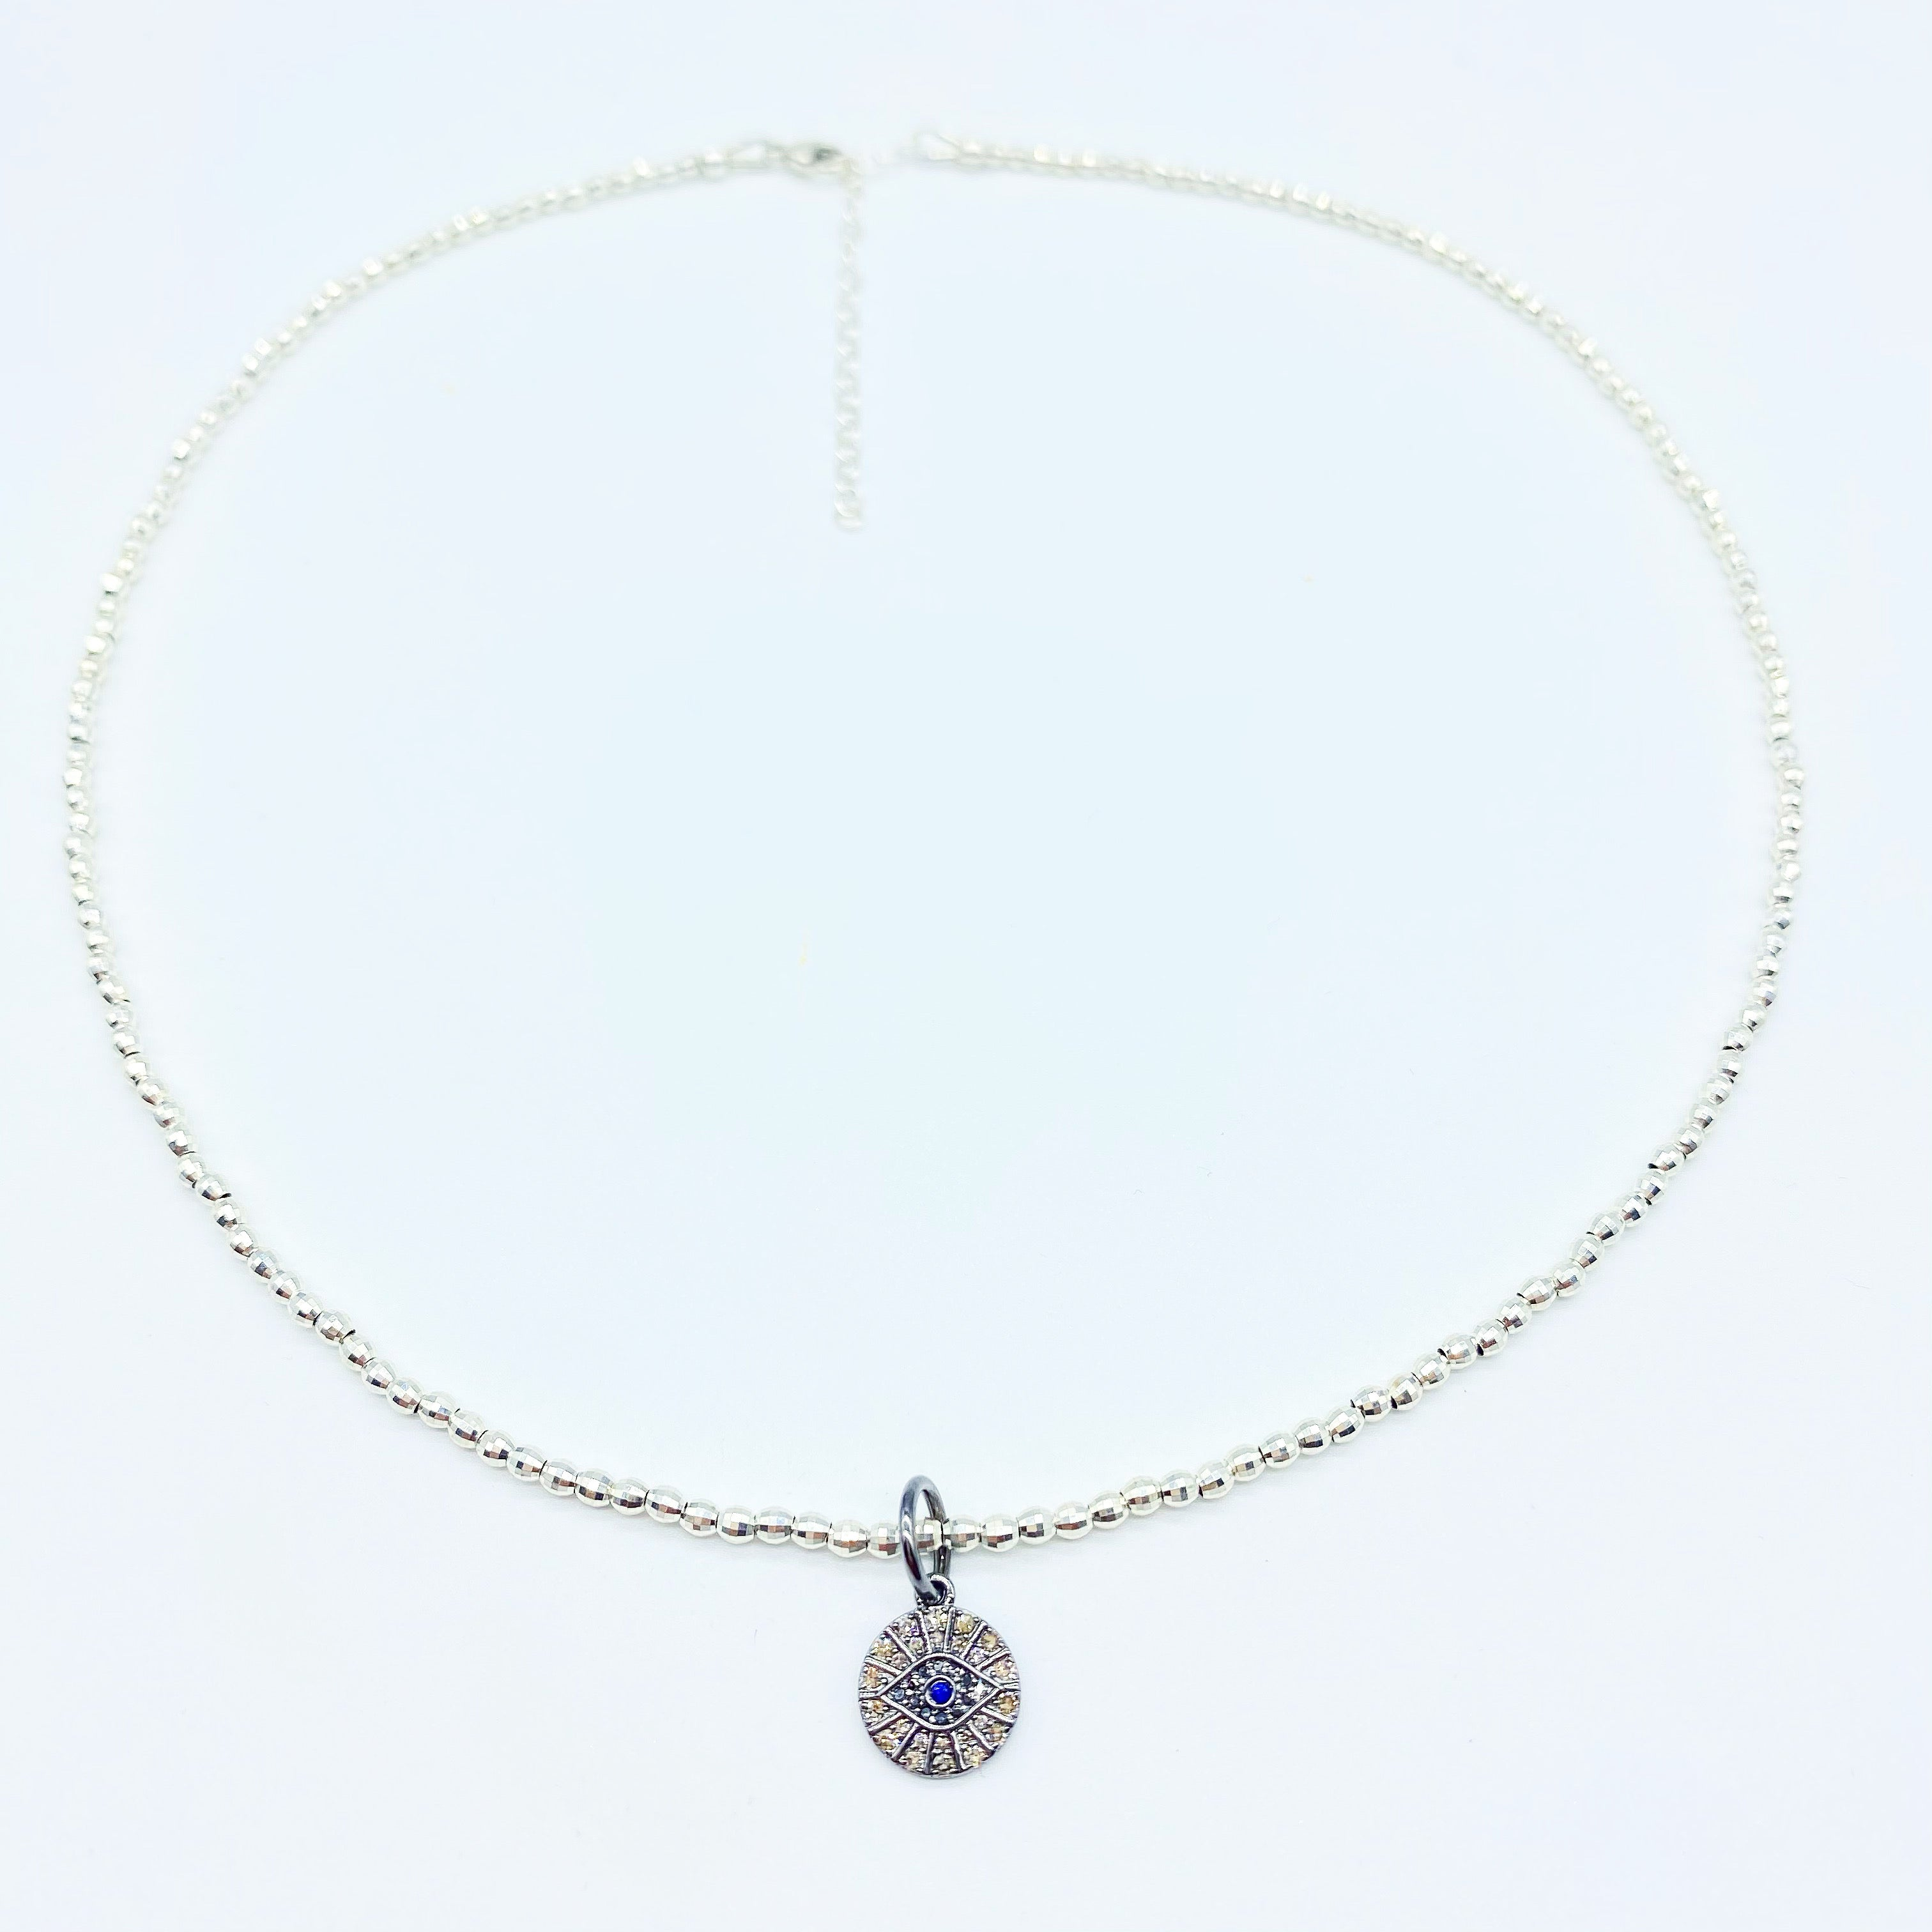 SILVER DIAMOND EVIL EYE NECKLACE